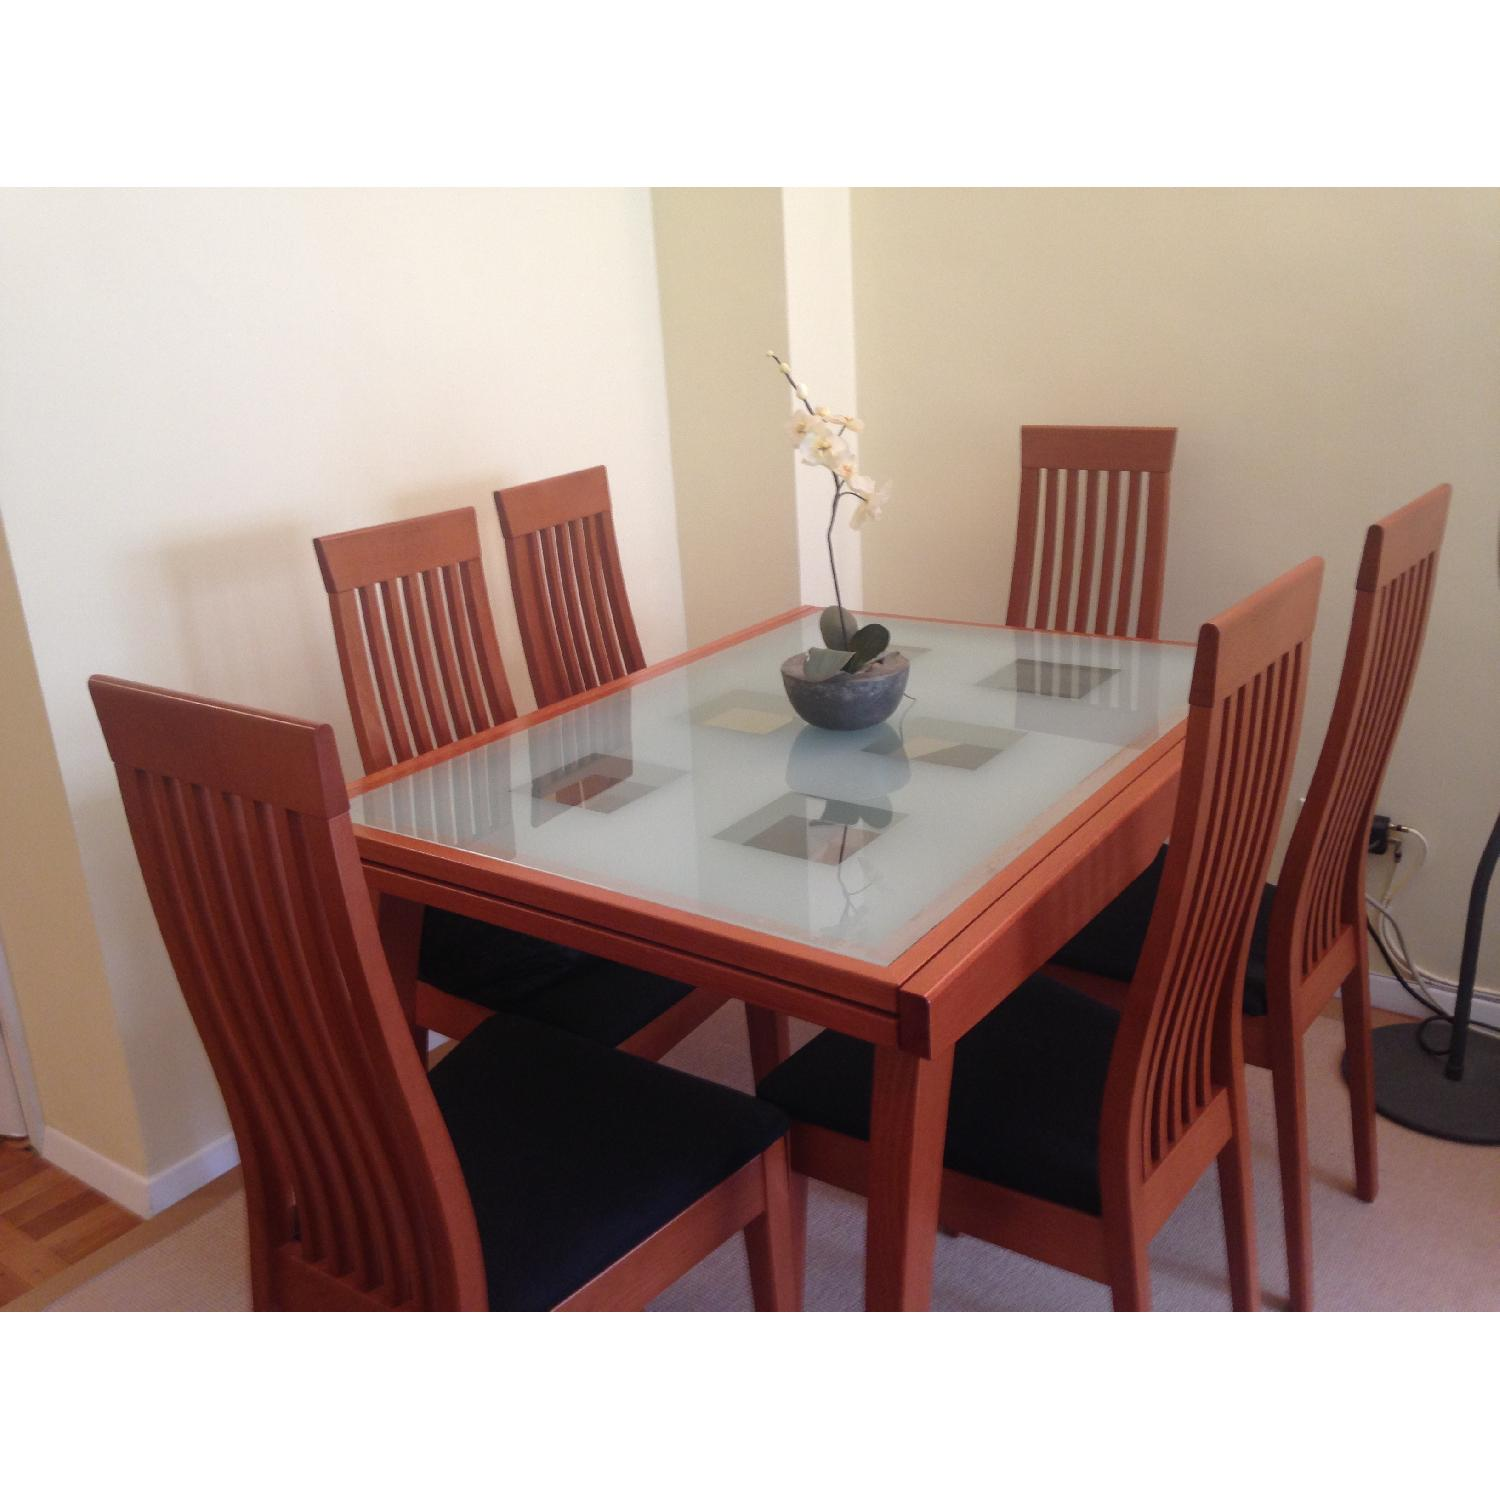 Calligaris Dining Table w/ 6 Chairs - image-2